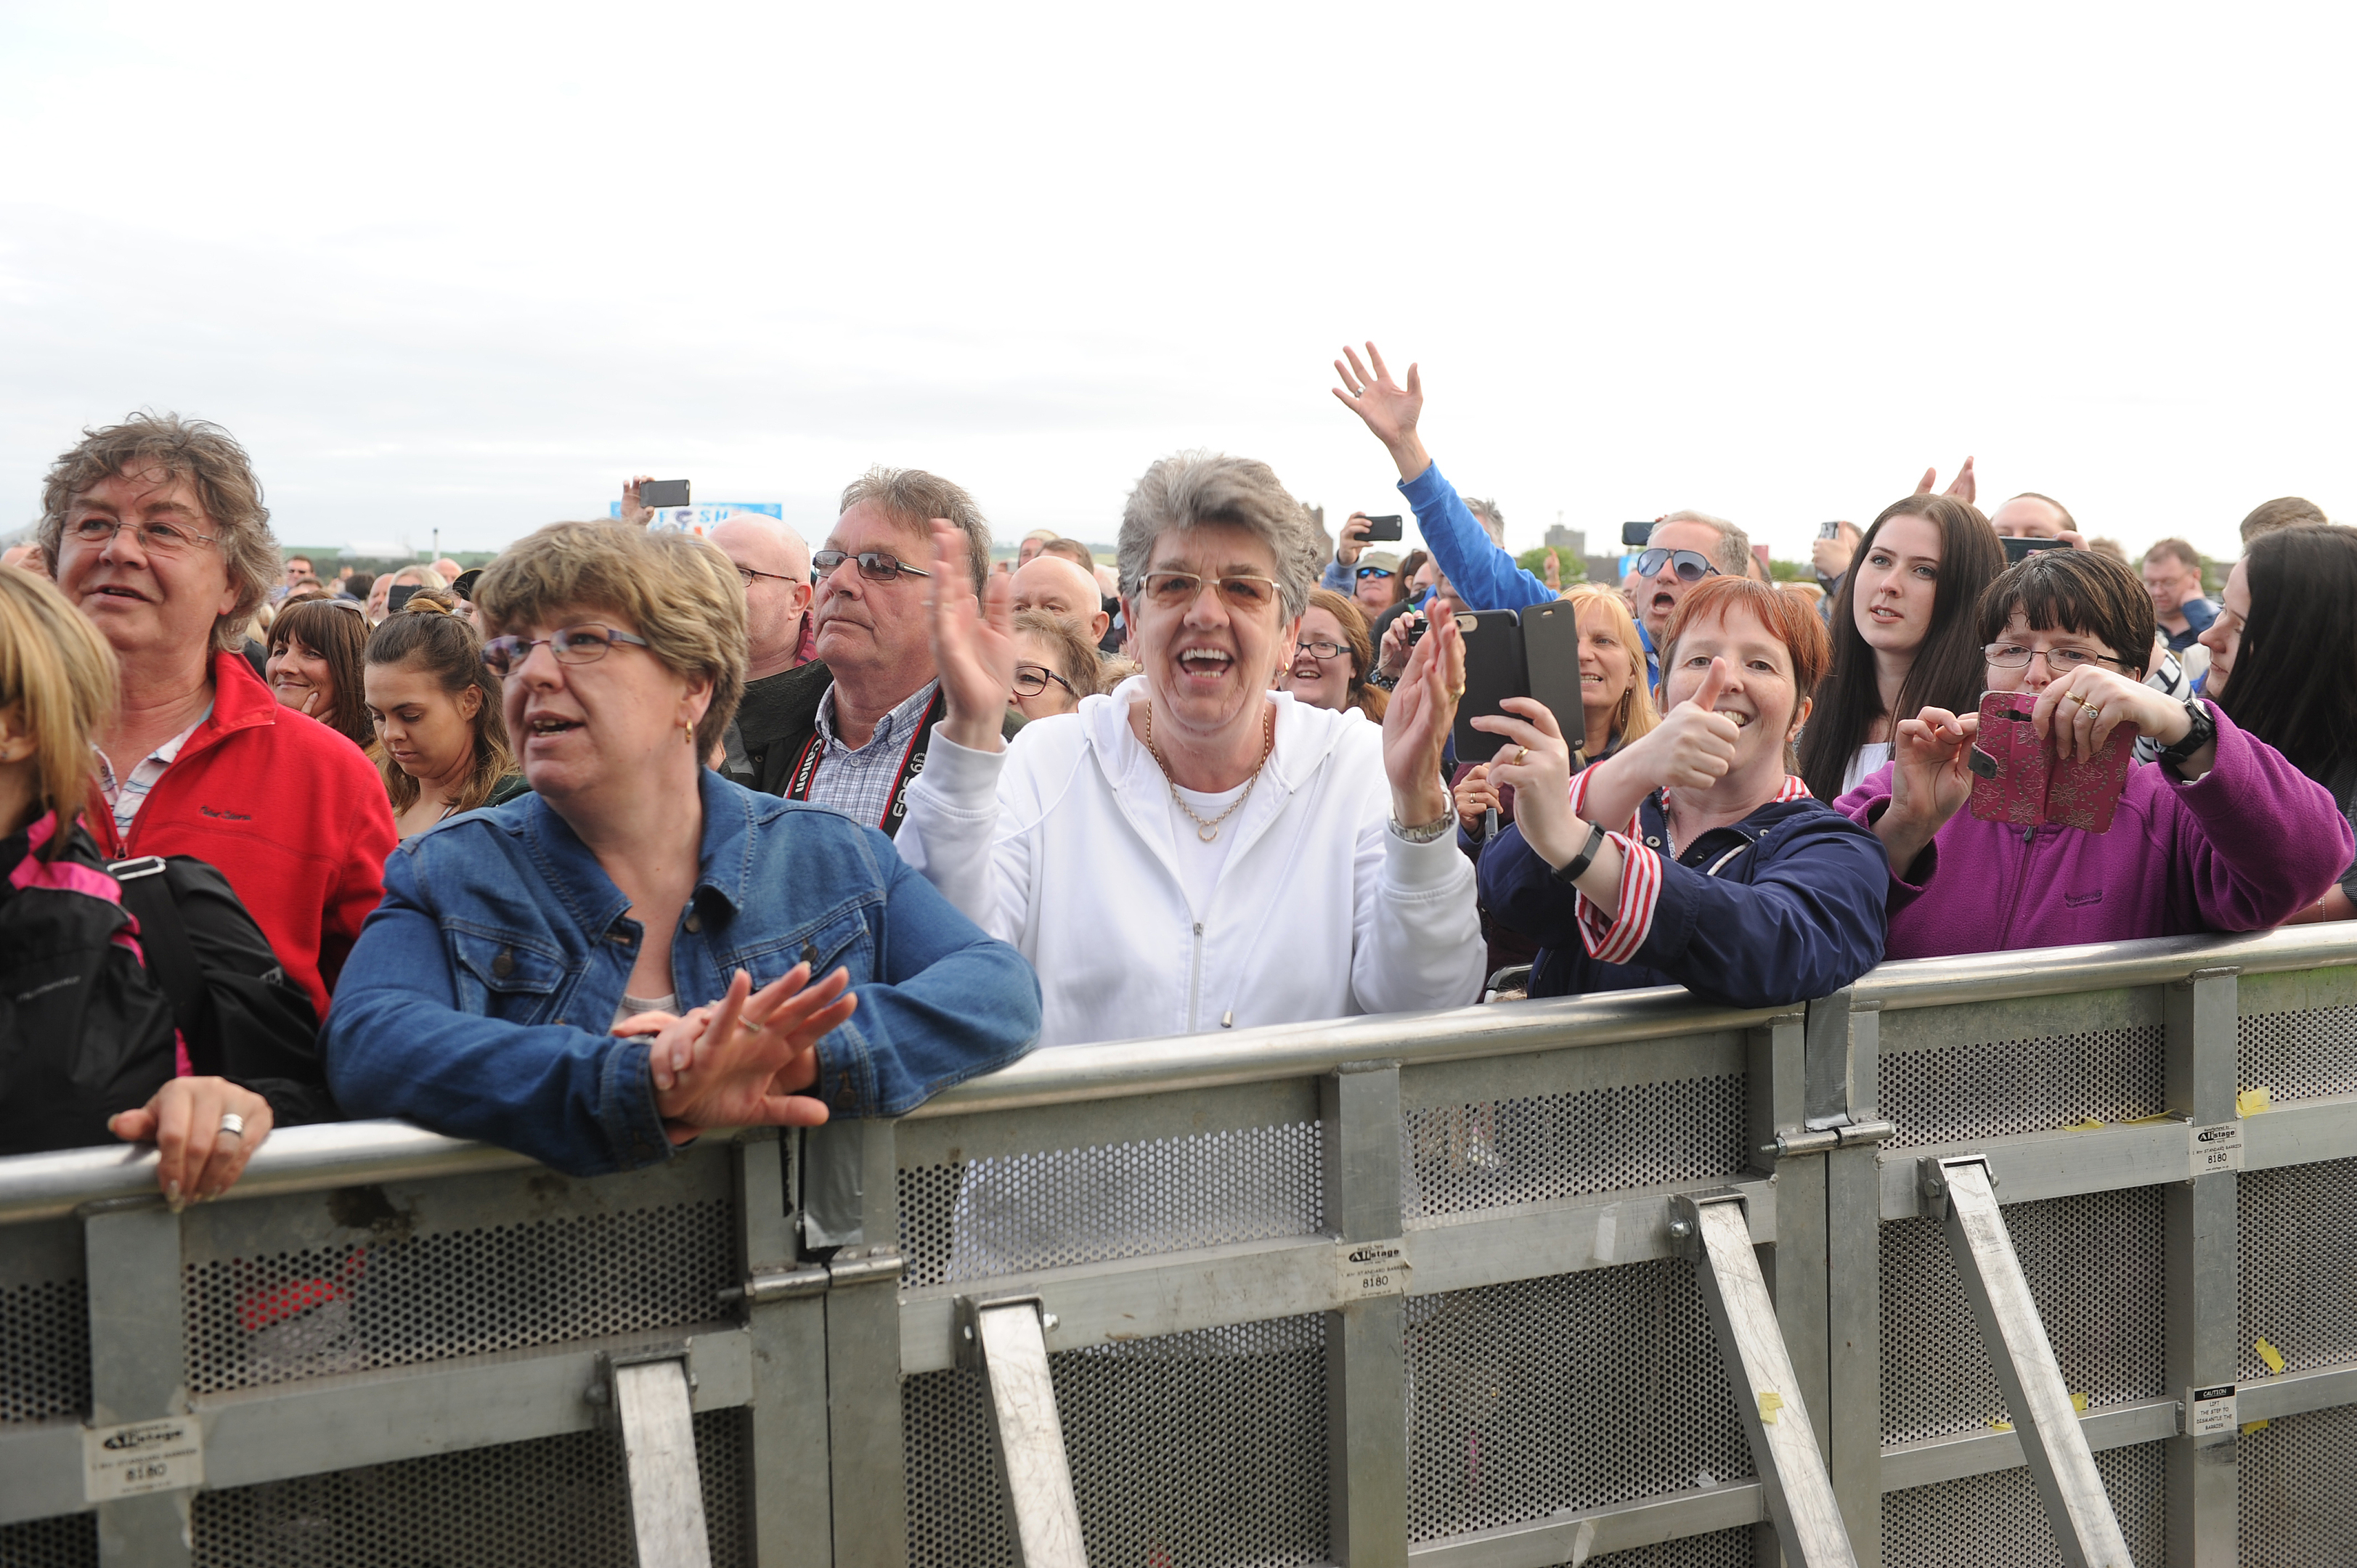 MoFest fans enjoying the Beach Boys in 2017.